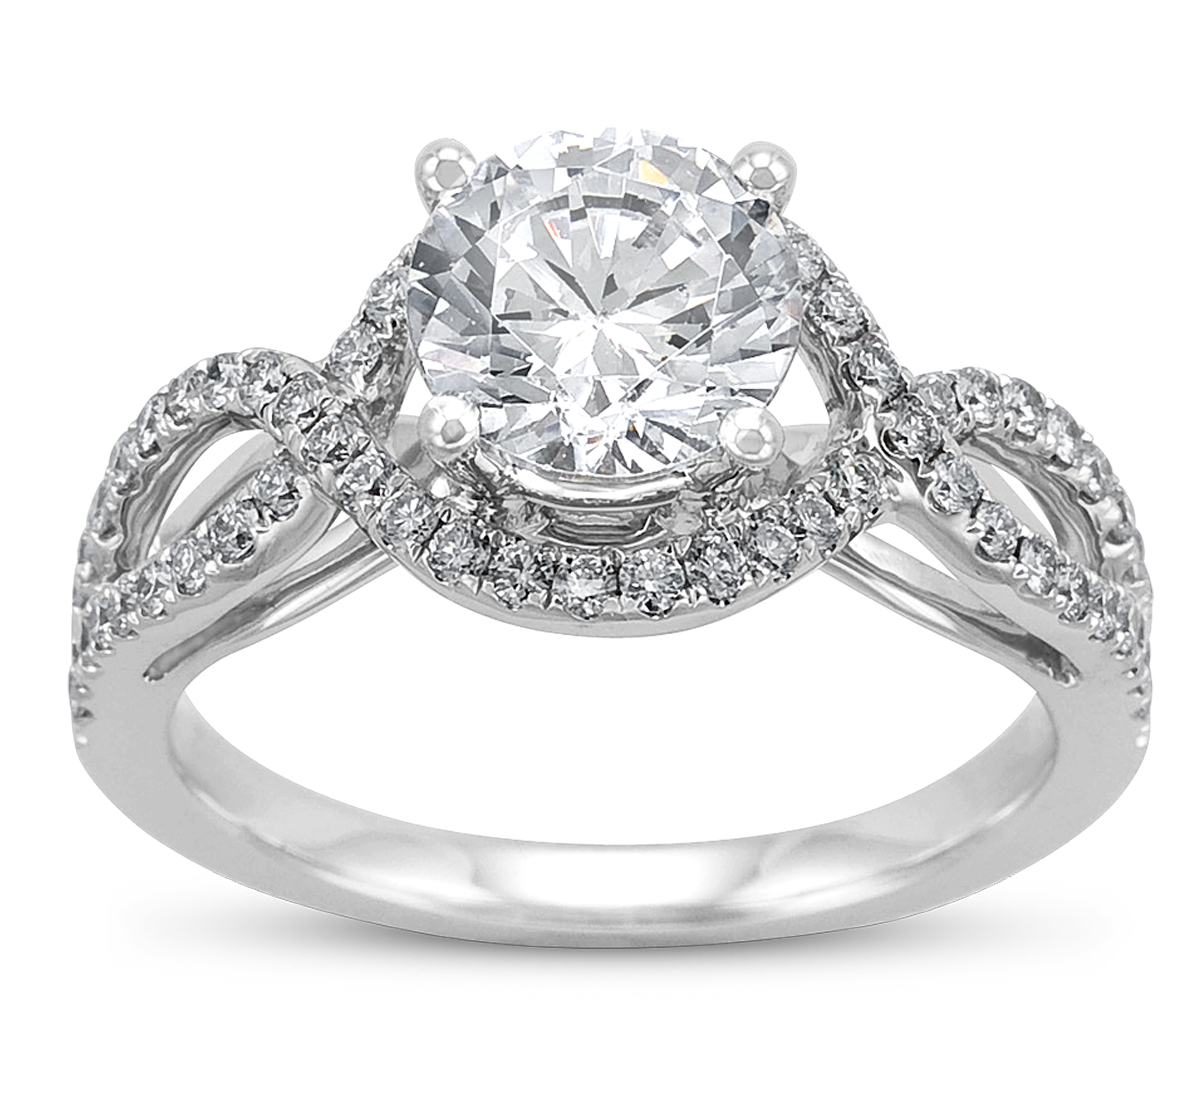 Robbins Brothers Engagement Rings, Proposals & Weddings